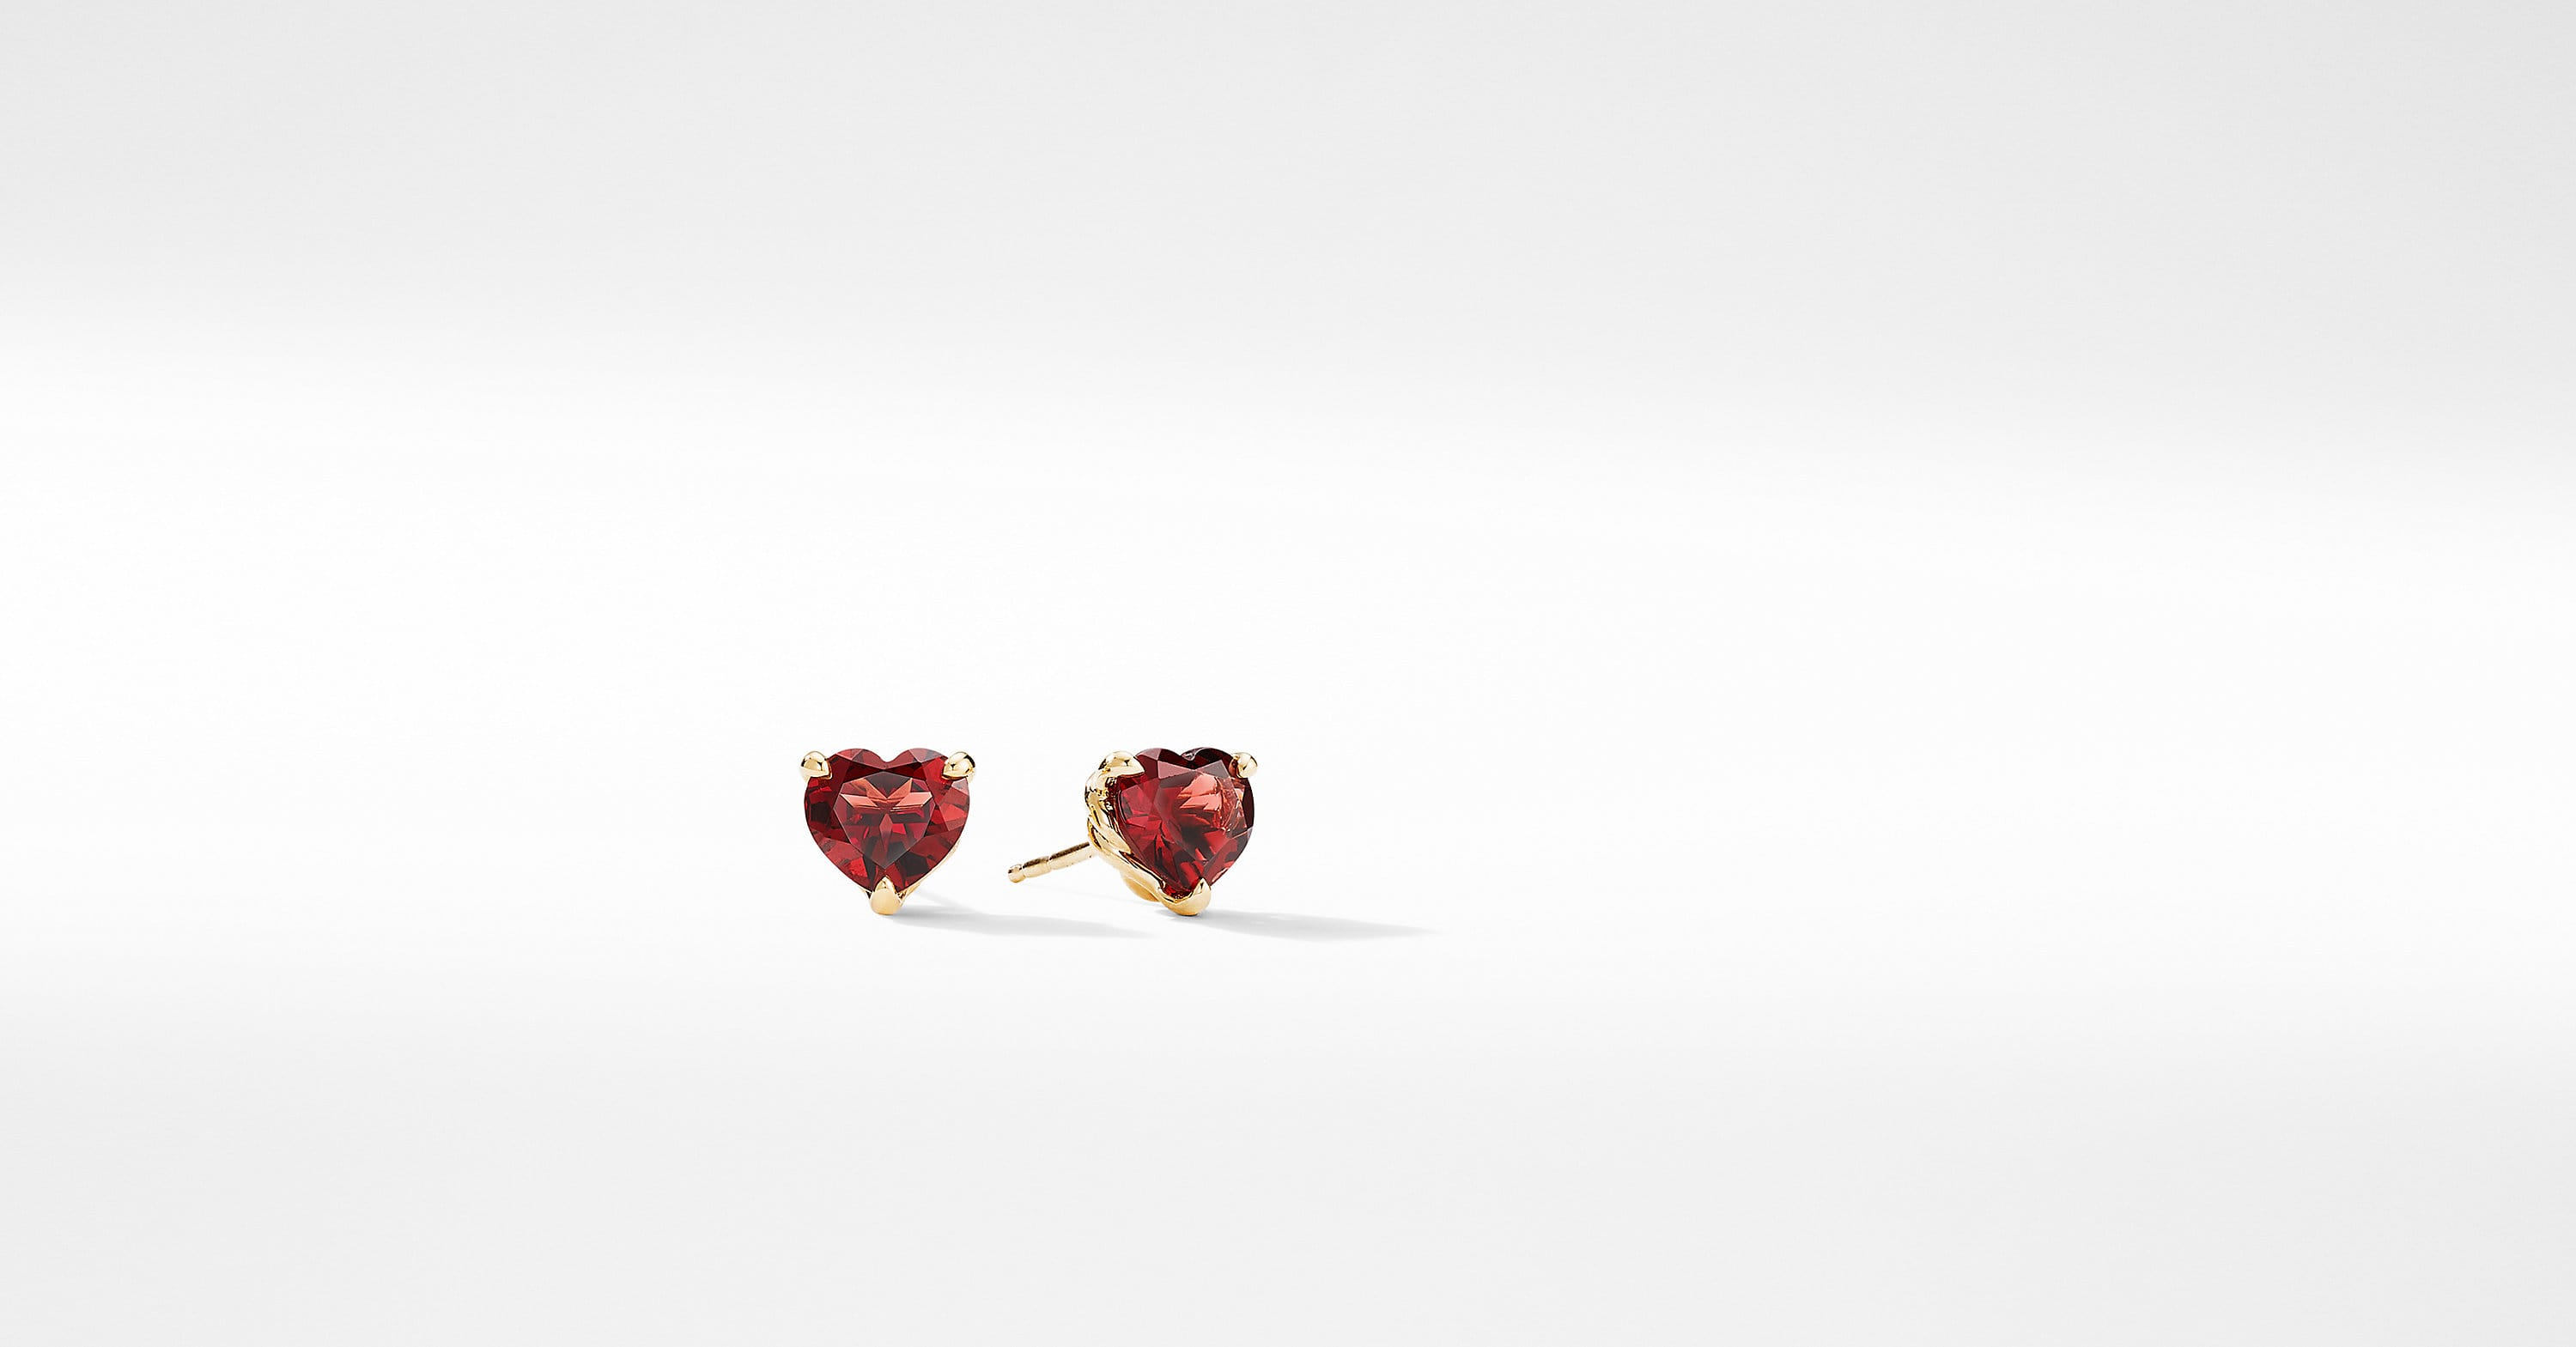 Heart Stud Earrings in 18K Yellow Gold